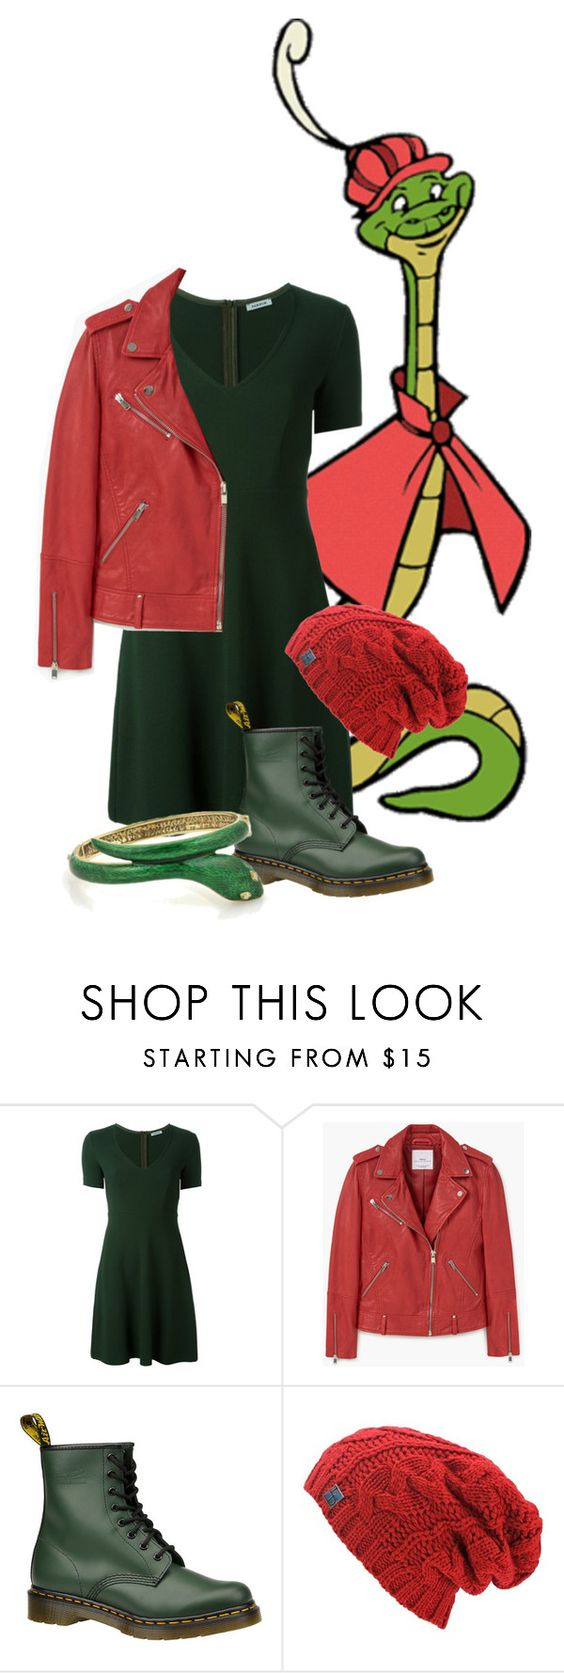 """""""Sir Hiss: winter is coming."""" by gema-z ❤ liked on Polyvore featuring P.A.R.O.S.H., MANGO and Dr. Martens"""